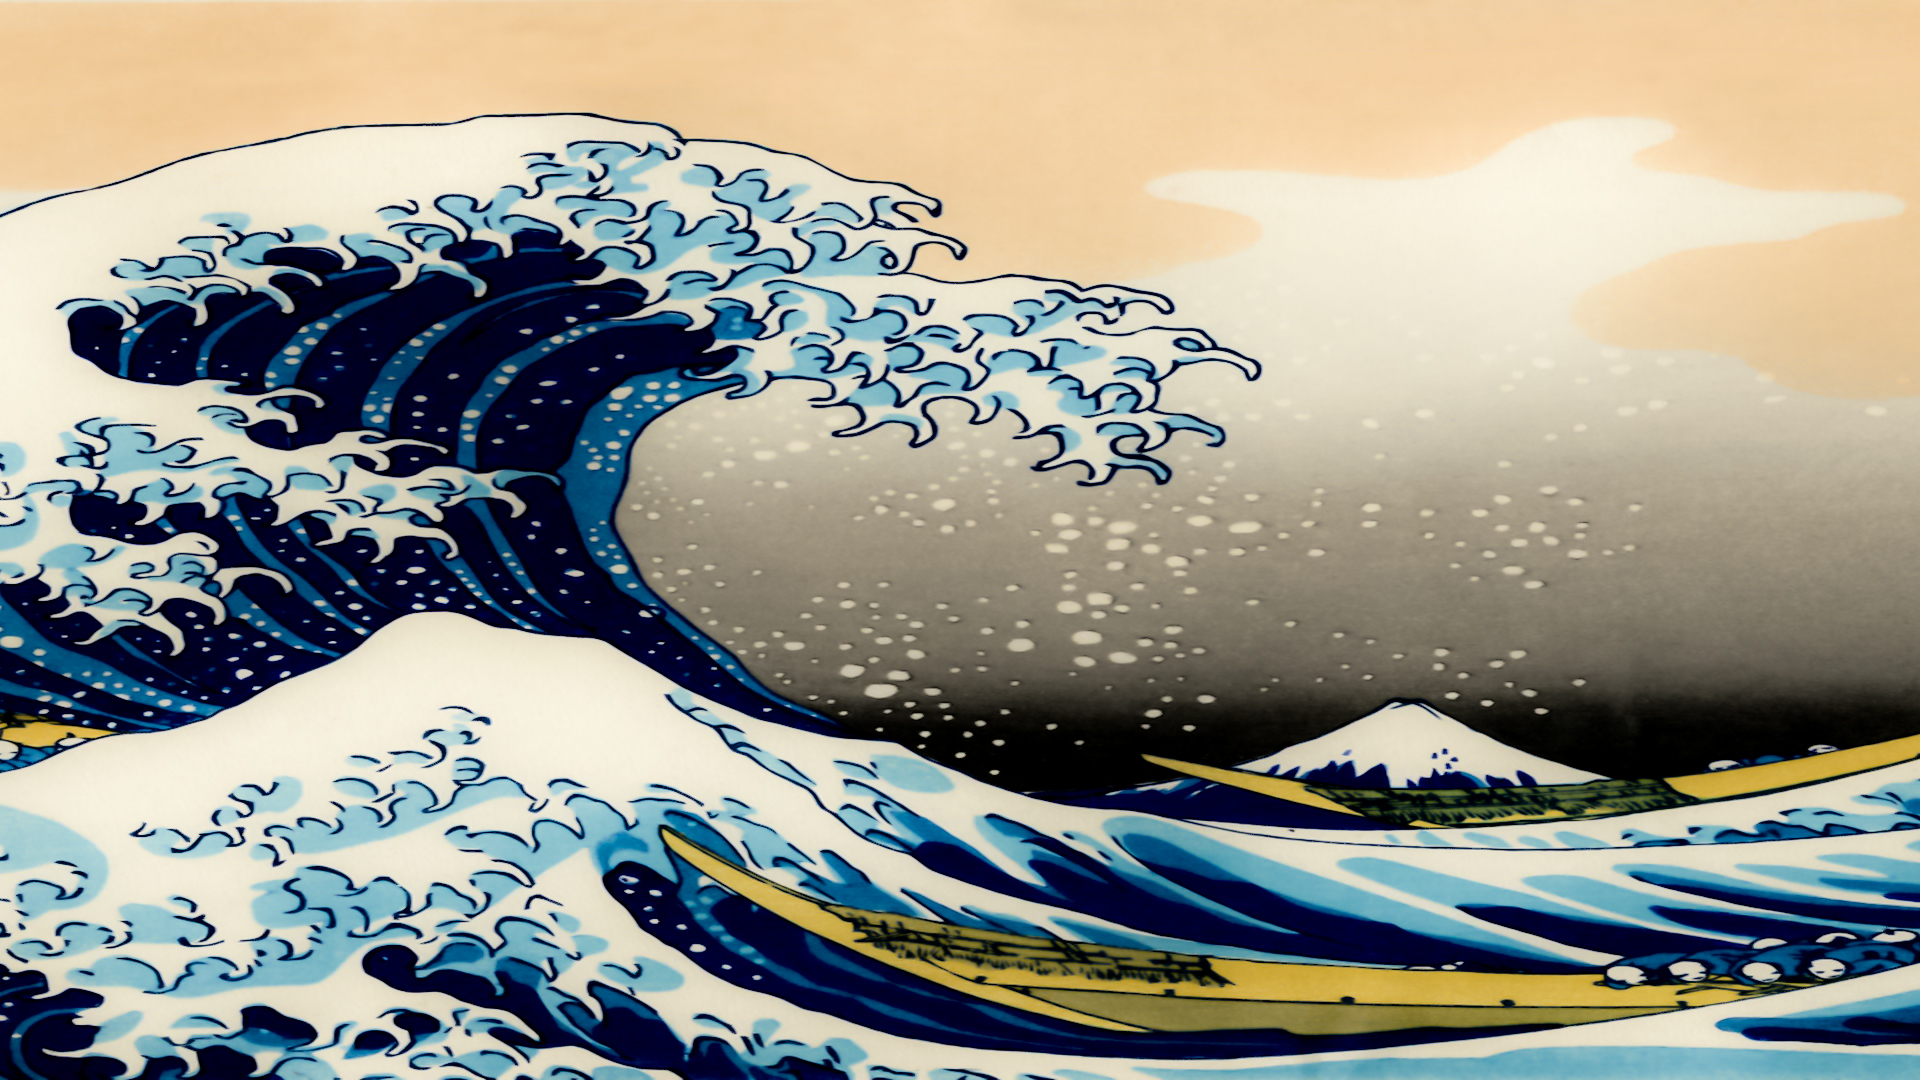 Free Download The Great Wave Off Kanagawa Wallpaper 3200x1080